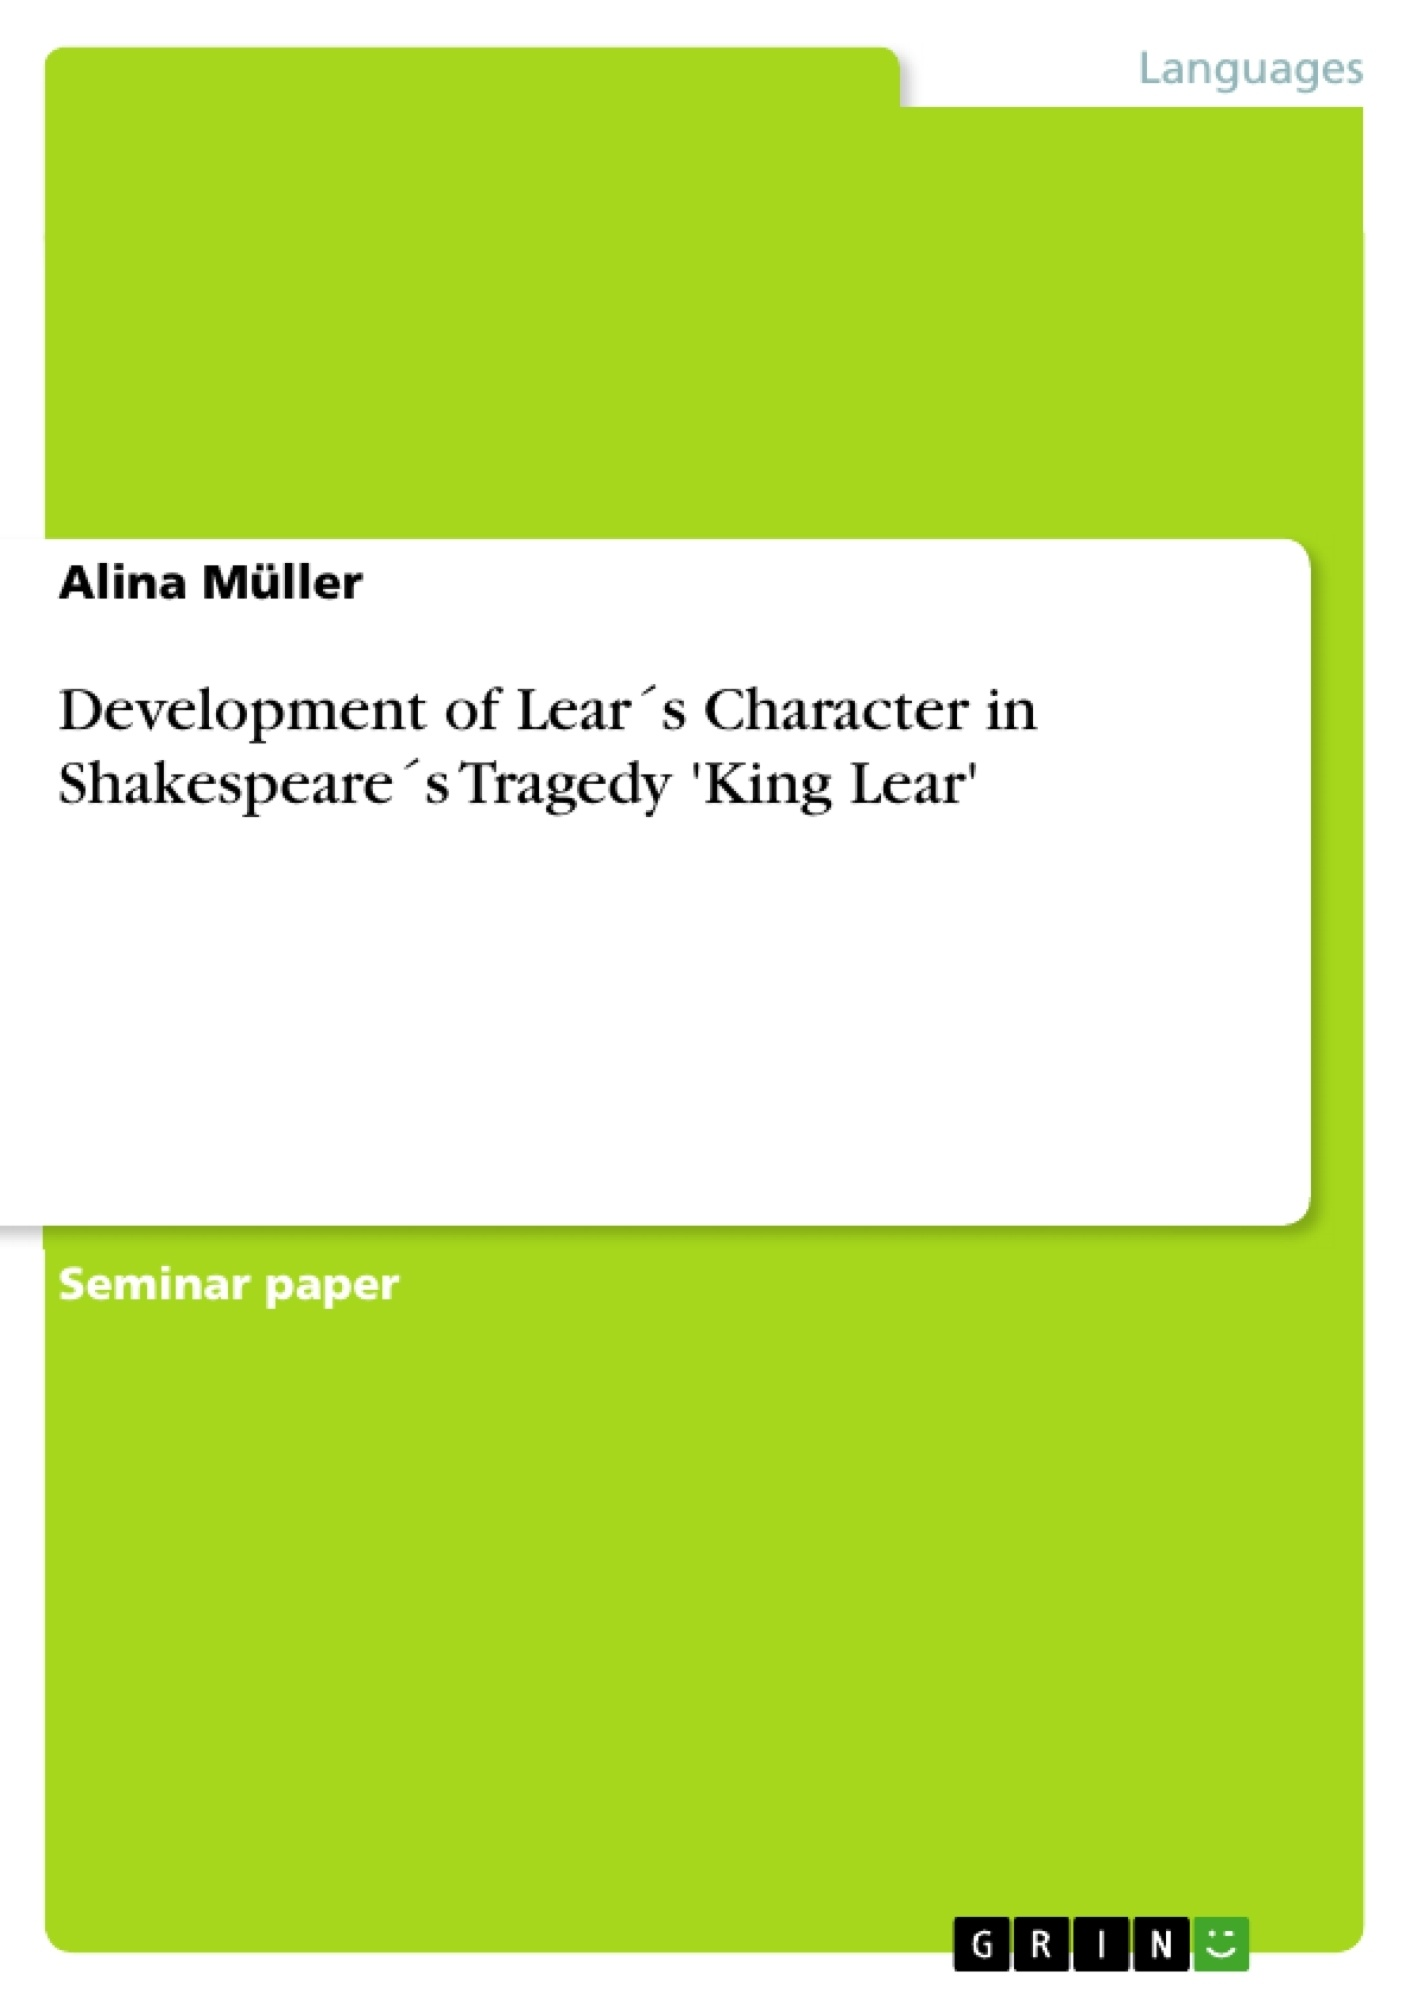 development of lear´s character in shakespeare´s tragedy king upload your own papers earn money and win an iphone 7